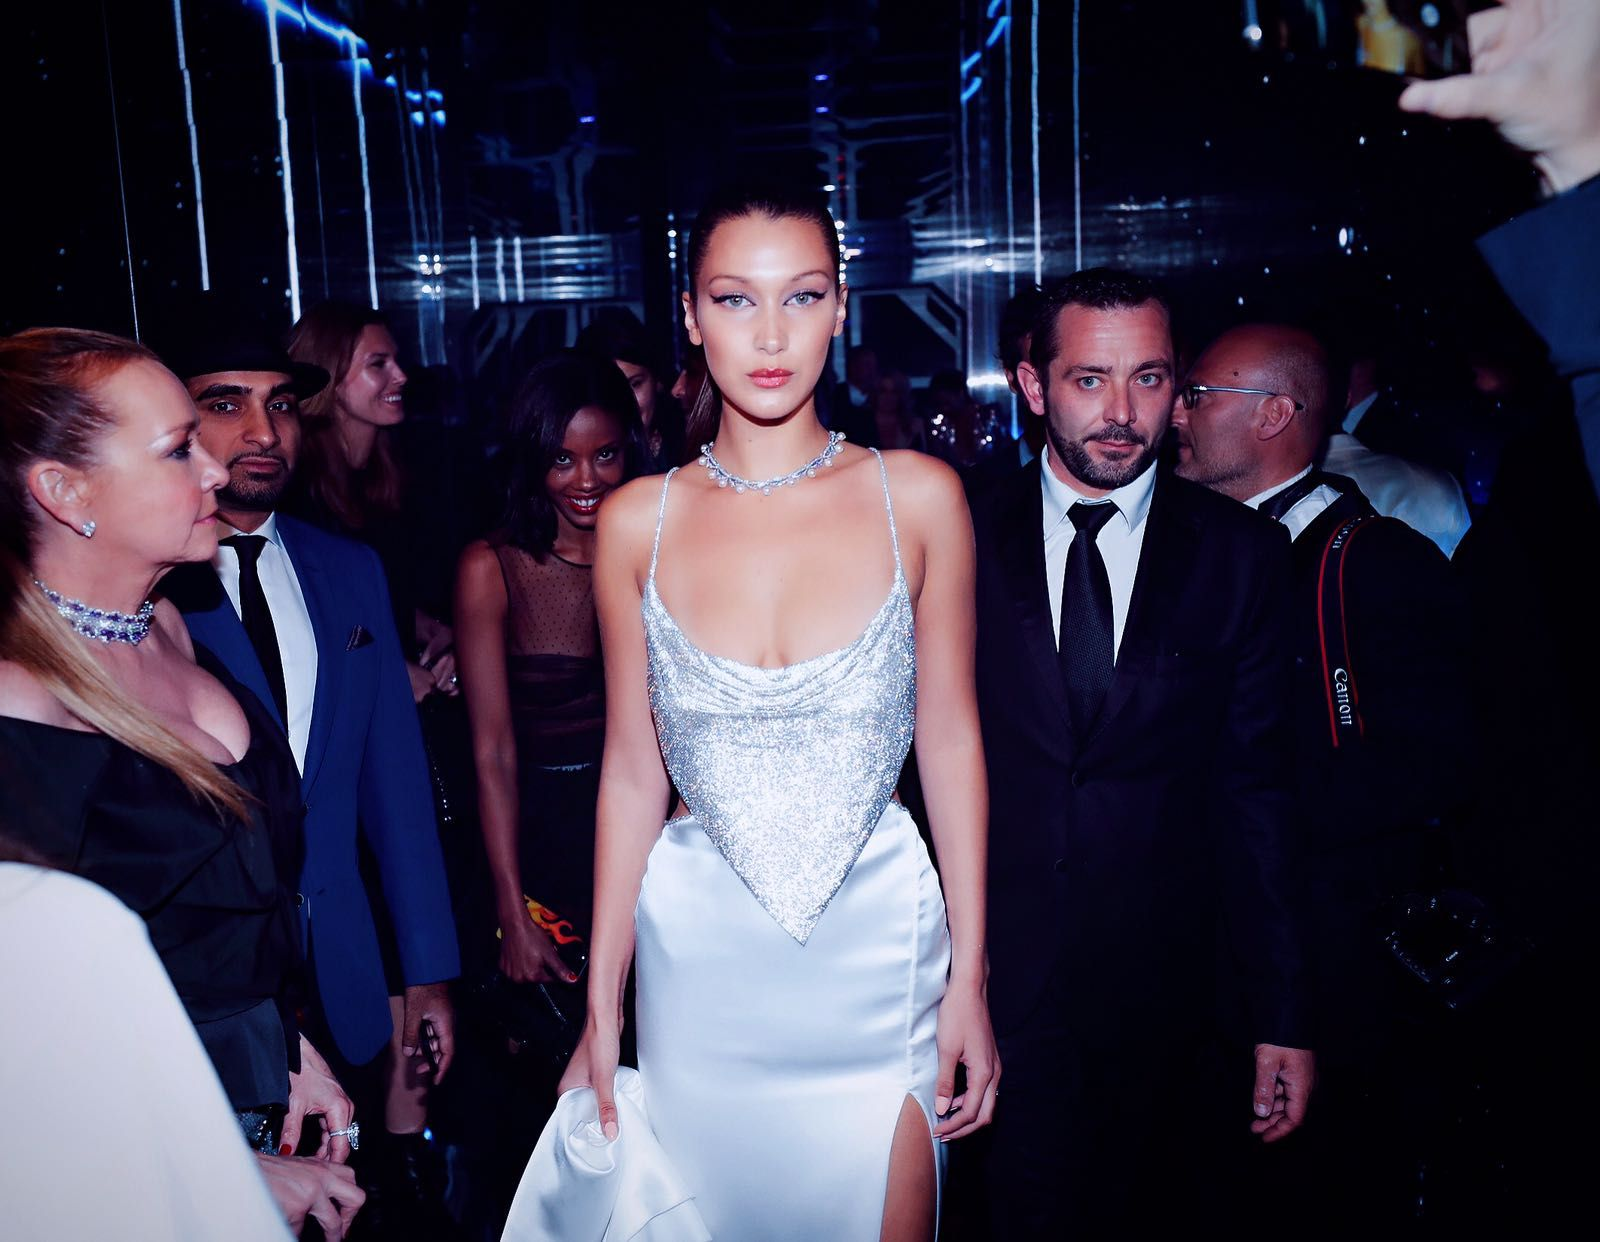 CrazyRouge Presents: Inside The Chopard Space Party At Cannes